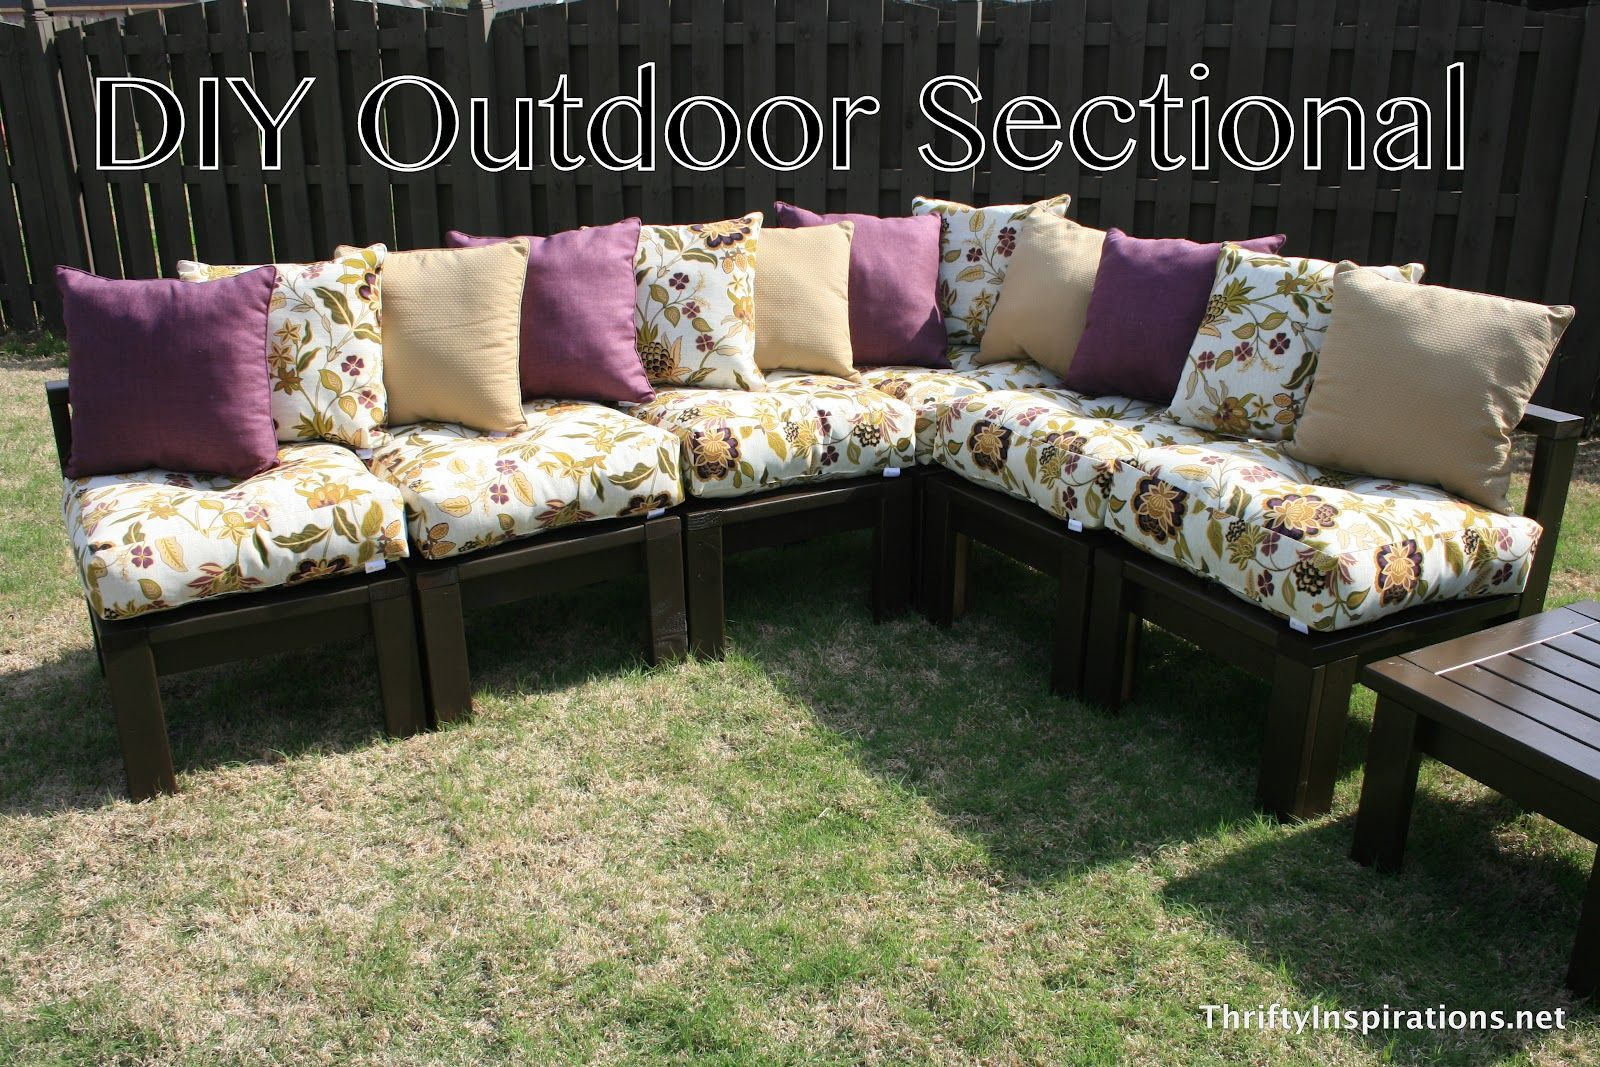 Diy outdoor sectional outdoor sectional sectional furniture and the 36th avenue diy outdoor sectional the 36th avenue solutioingenieria Images